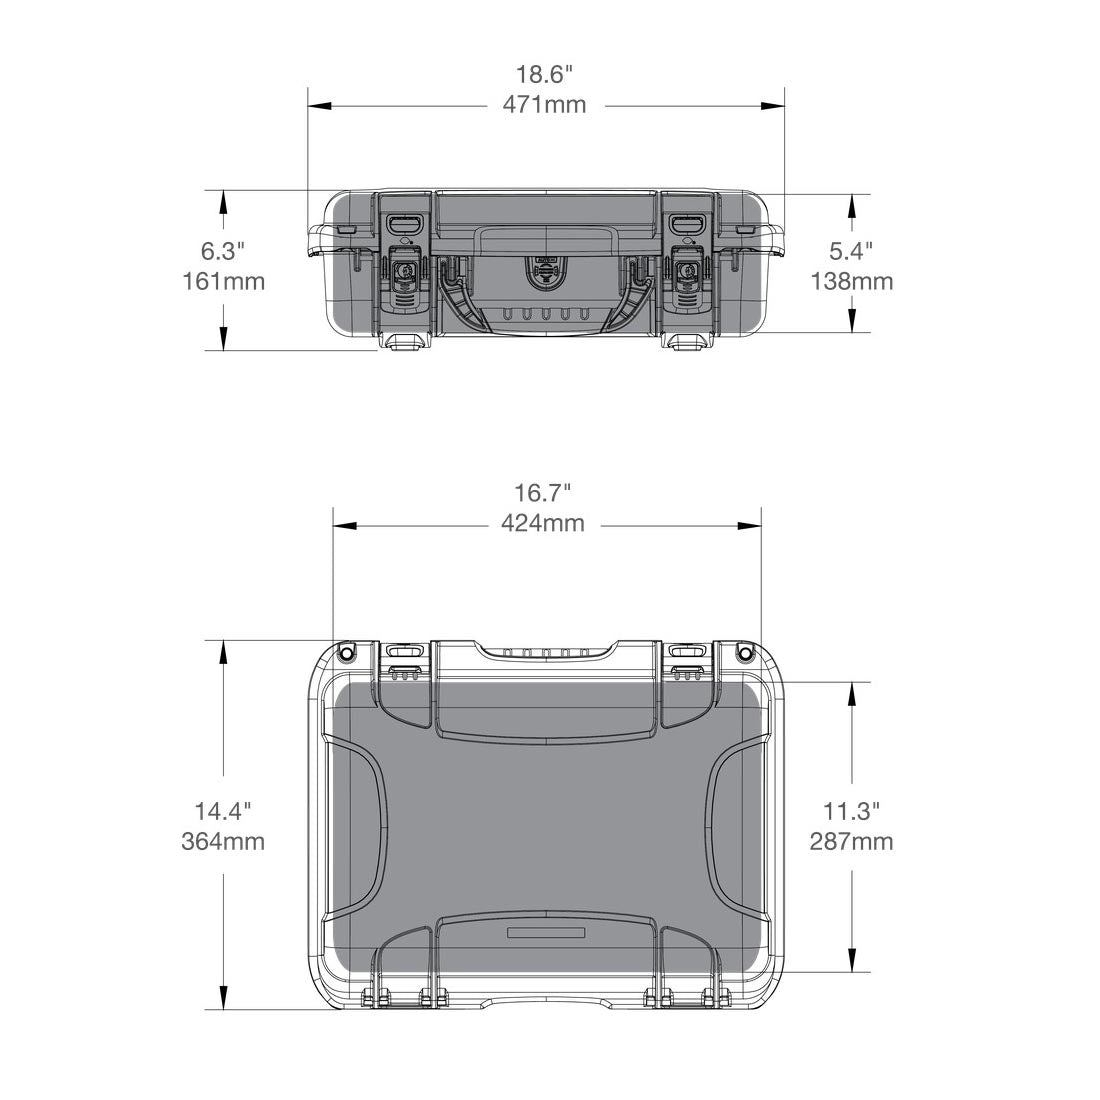 NANUK 923 Hard Case Specifications Dimensions